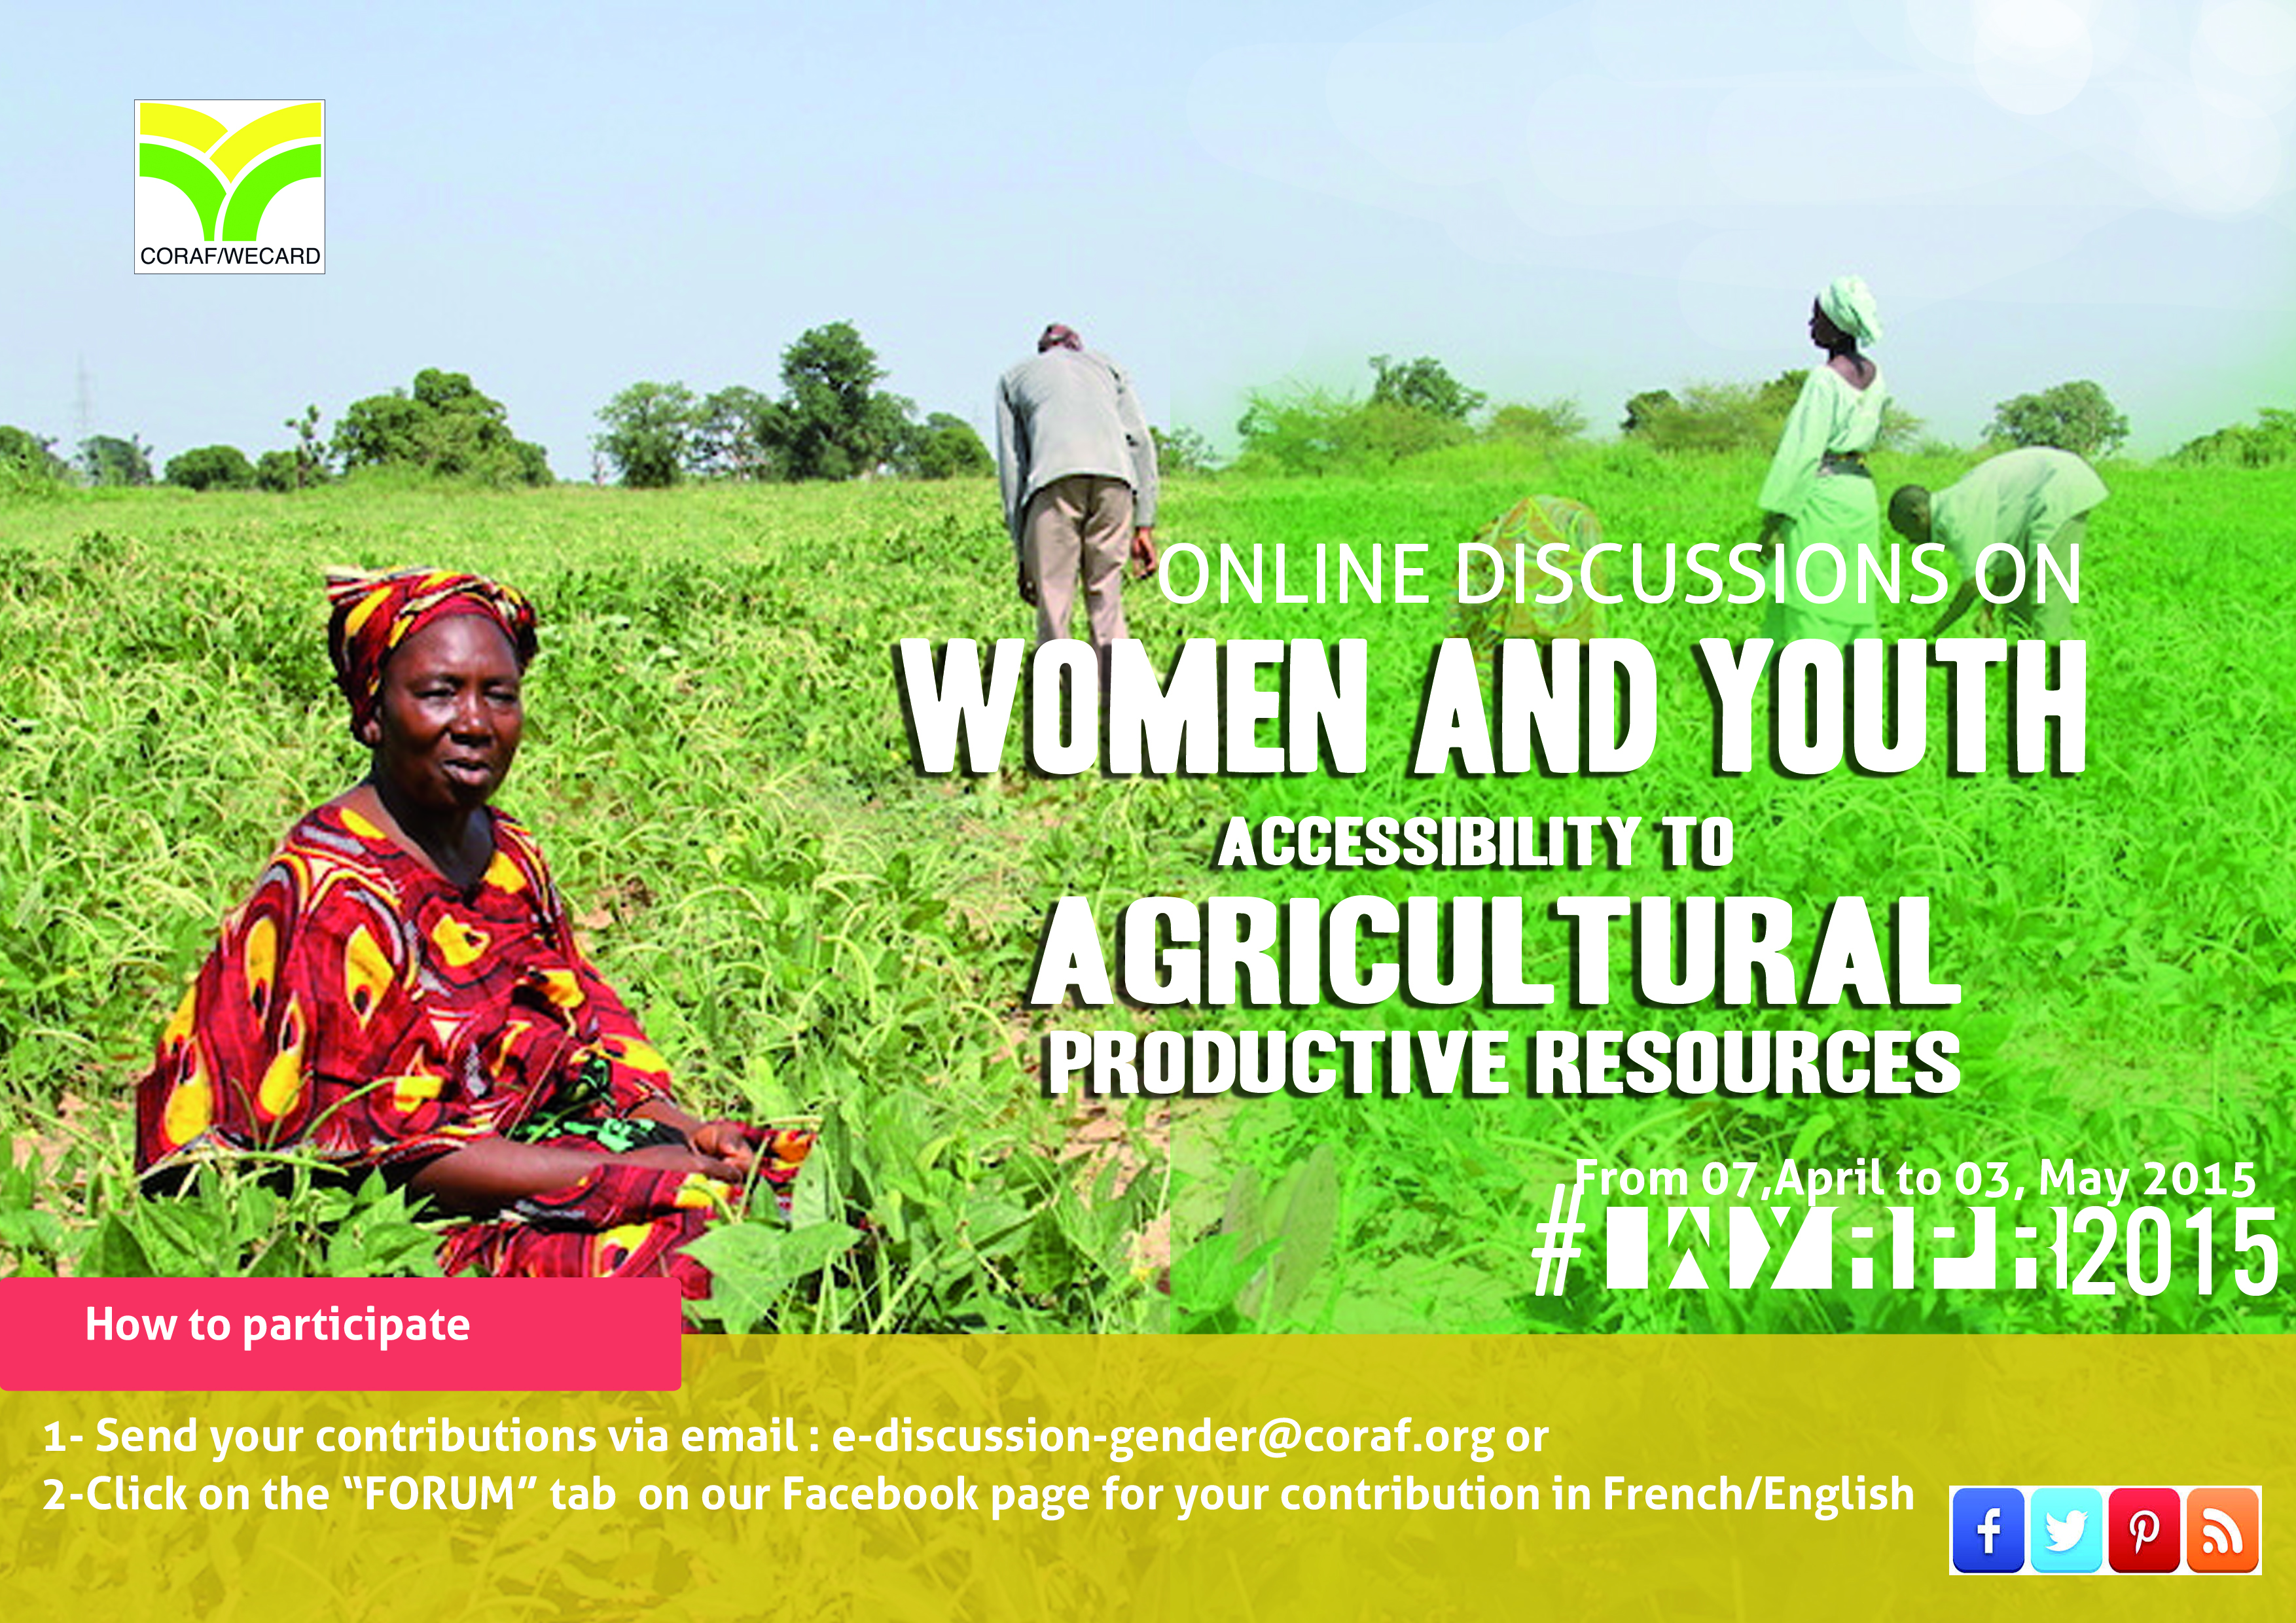 Access of women and youth in agricultural productive resources : CORAF / WECARD launches online discussion on the issue